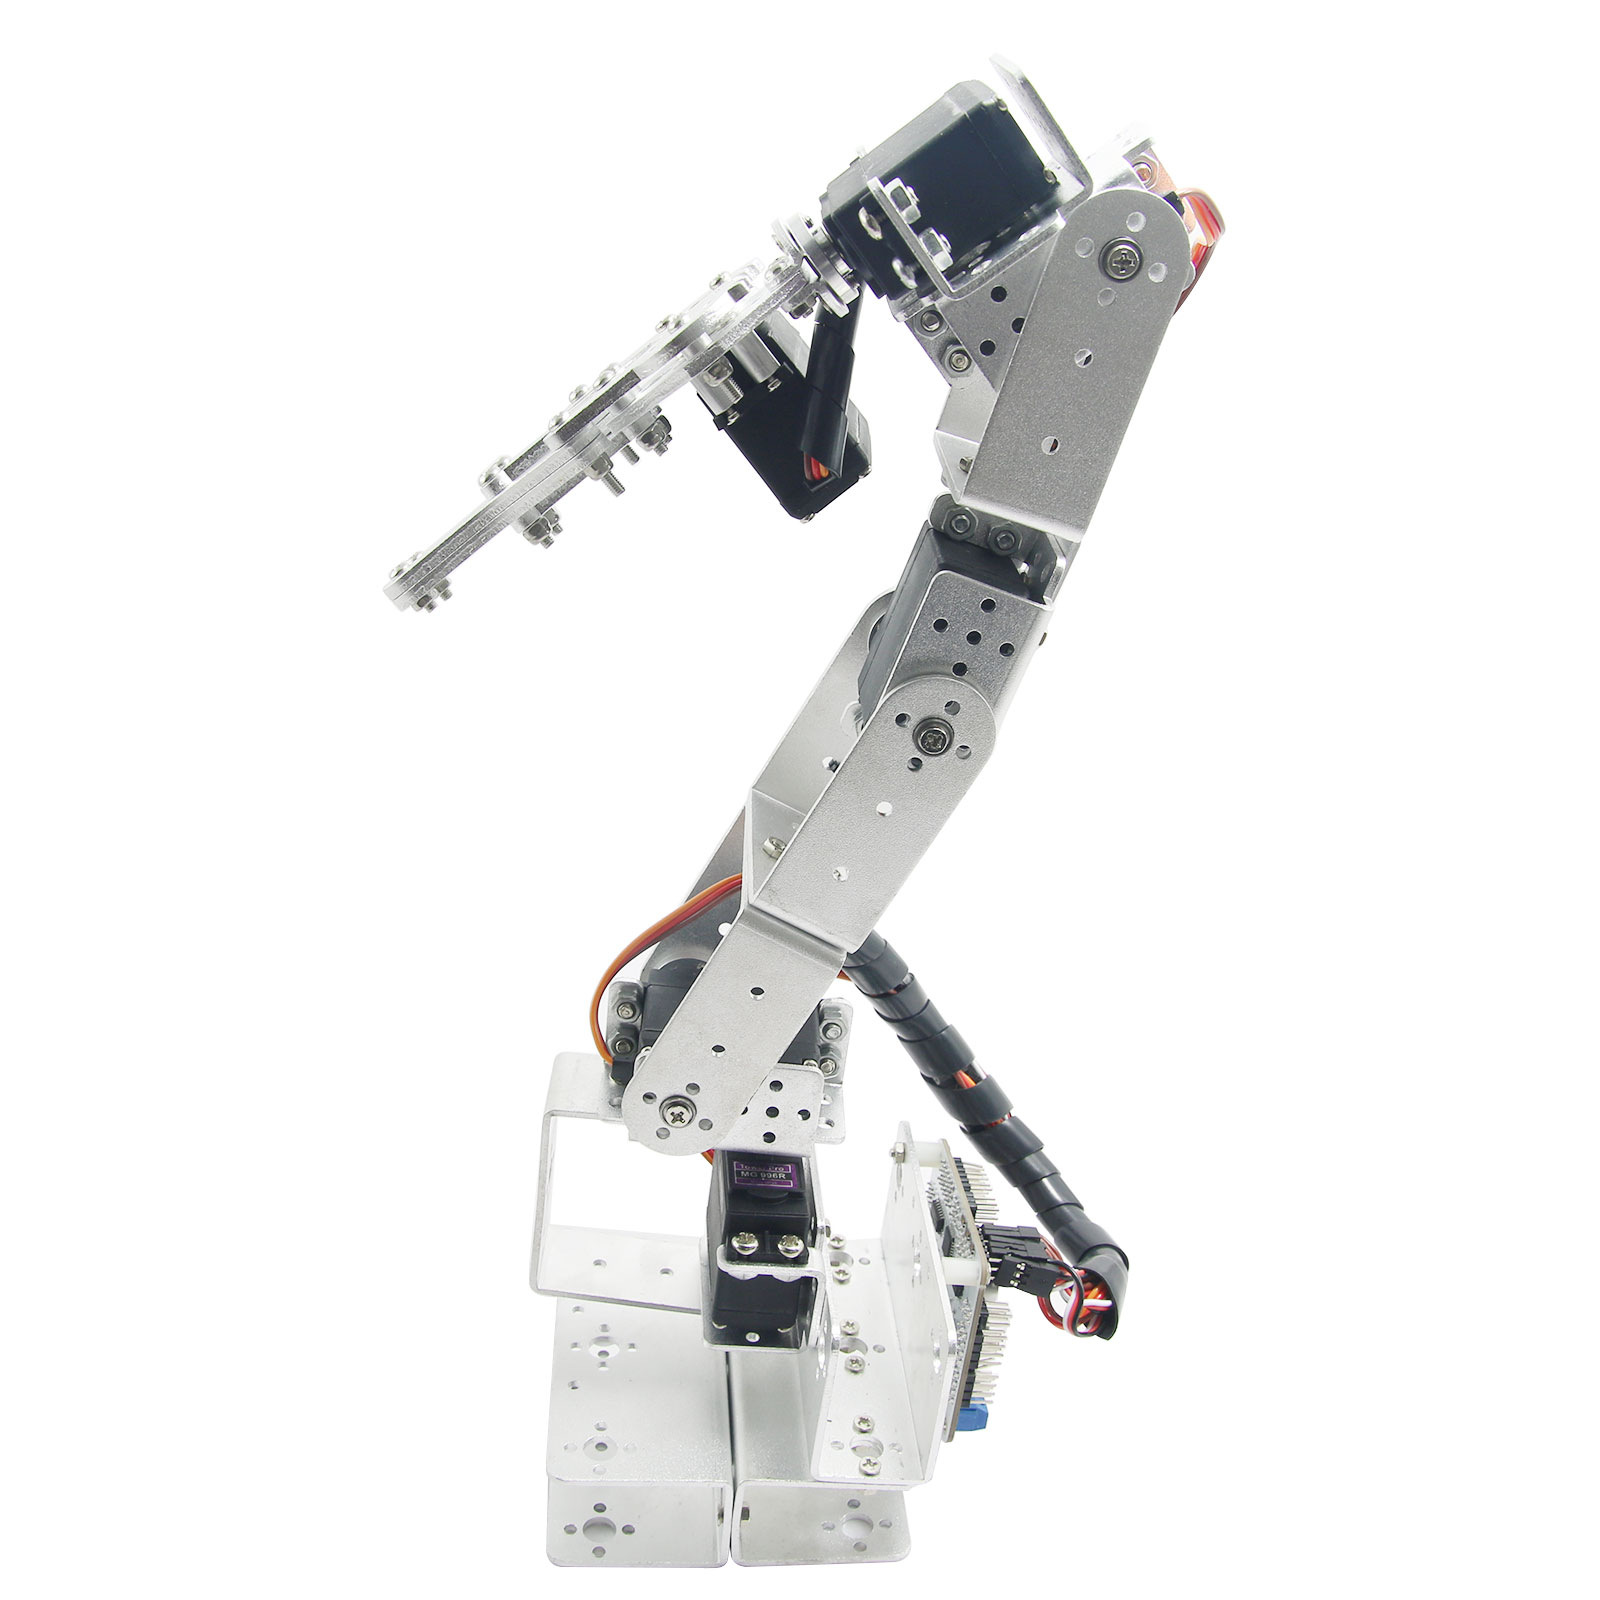 Aluminium Robot 6 DOF Arm Clamp Claw Mount Kit Mechanical Robotic Arm for Arduino Compatible 4 dof robot mechanical arm claw